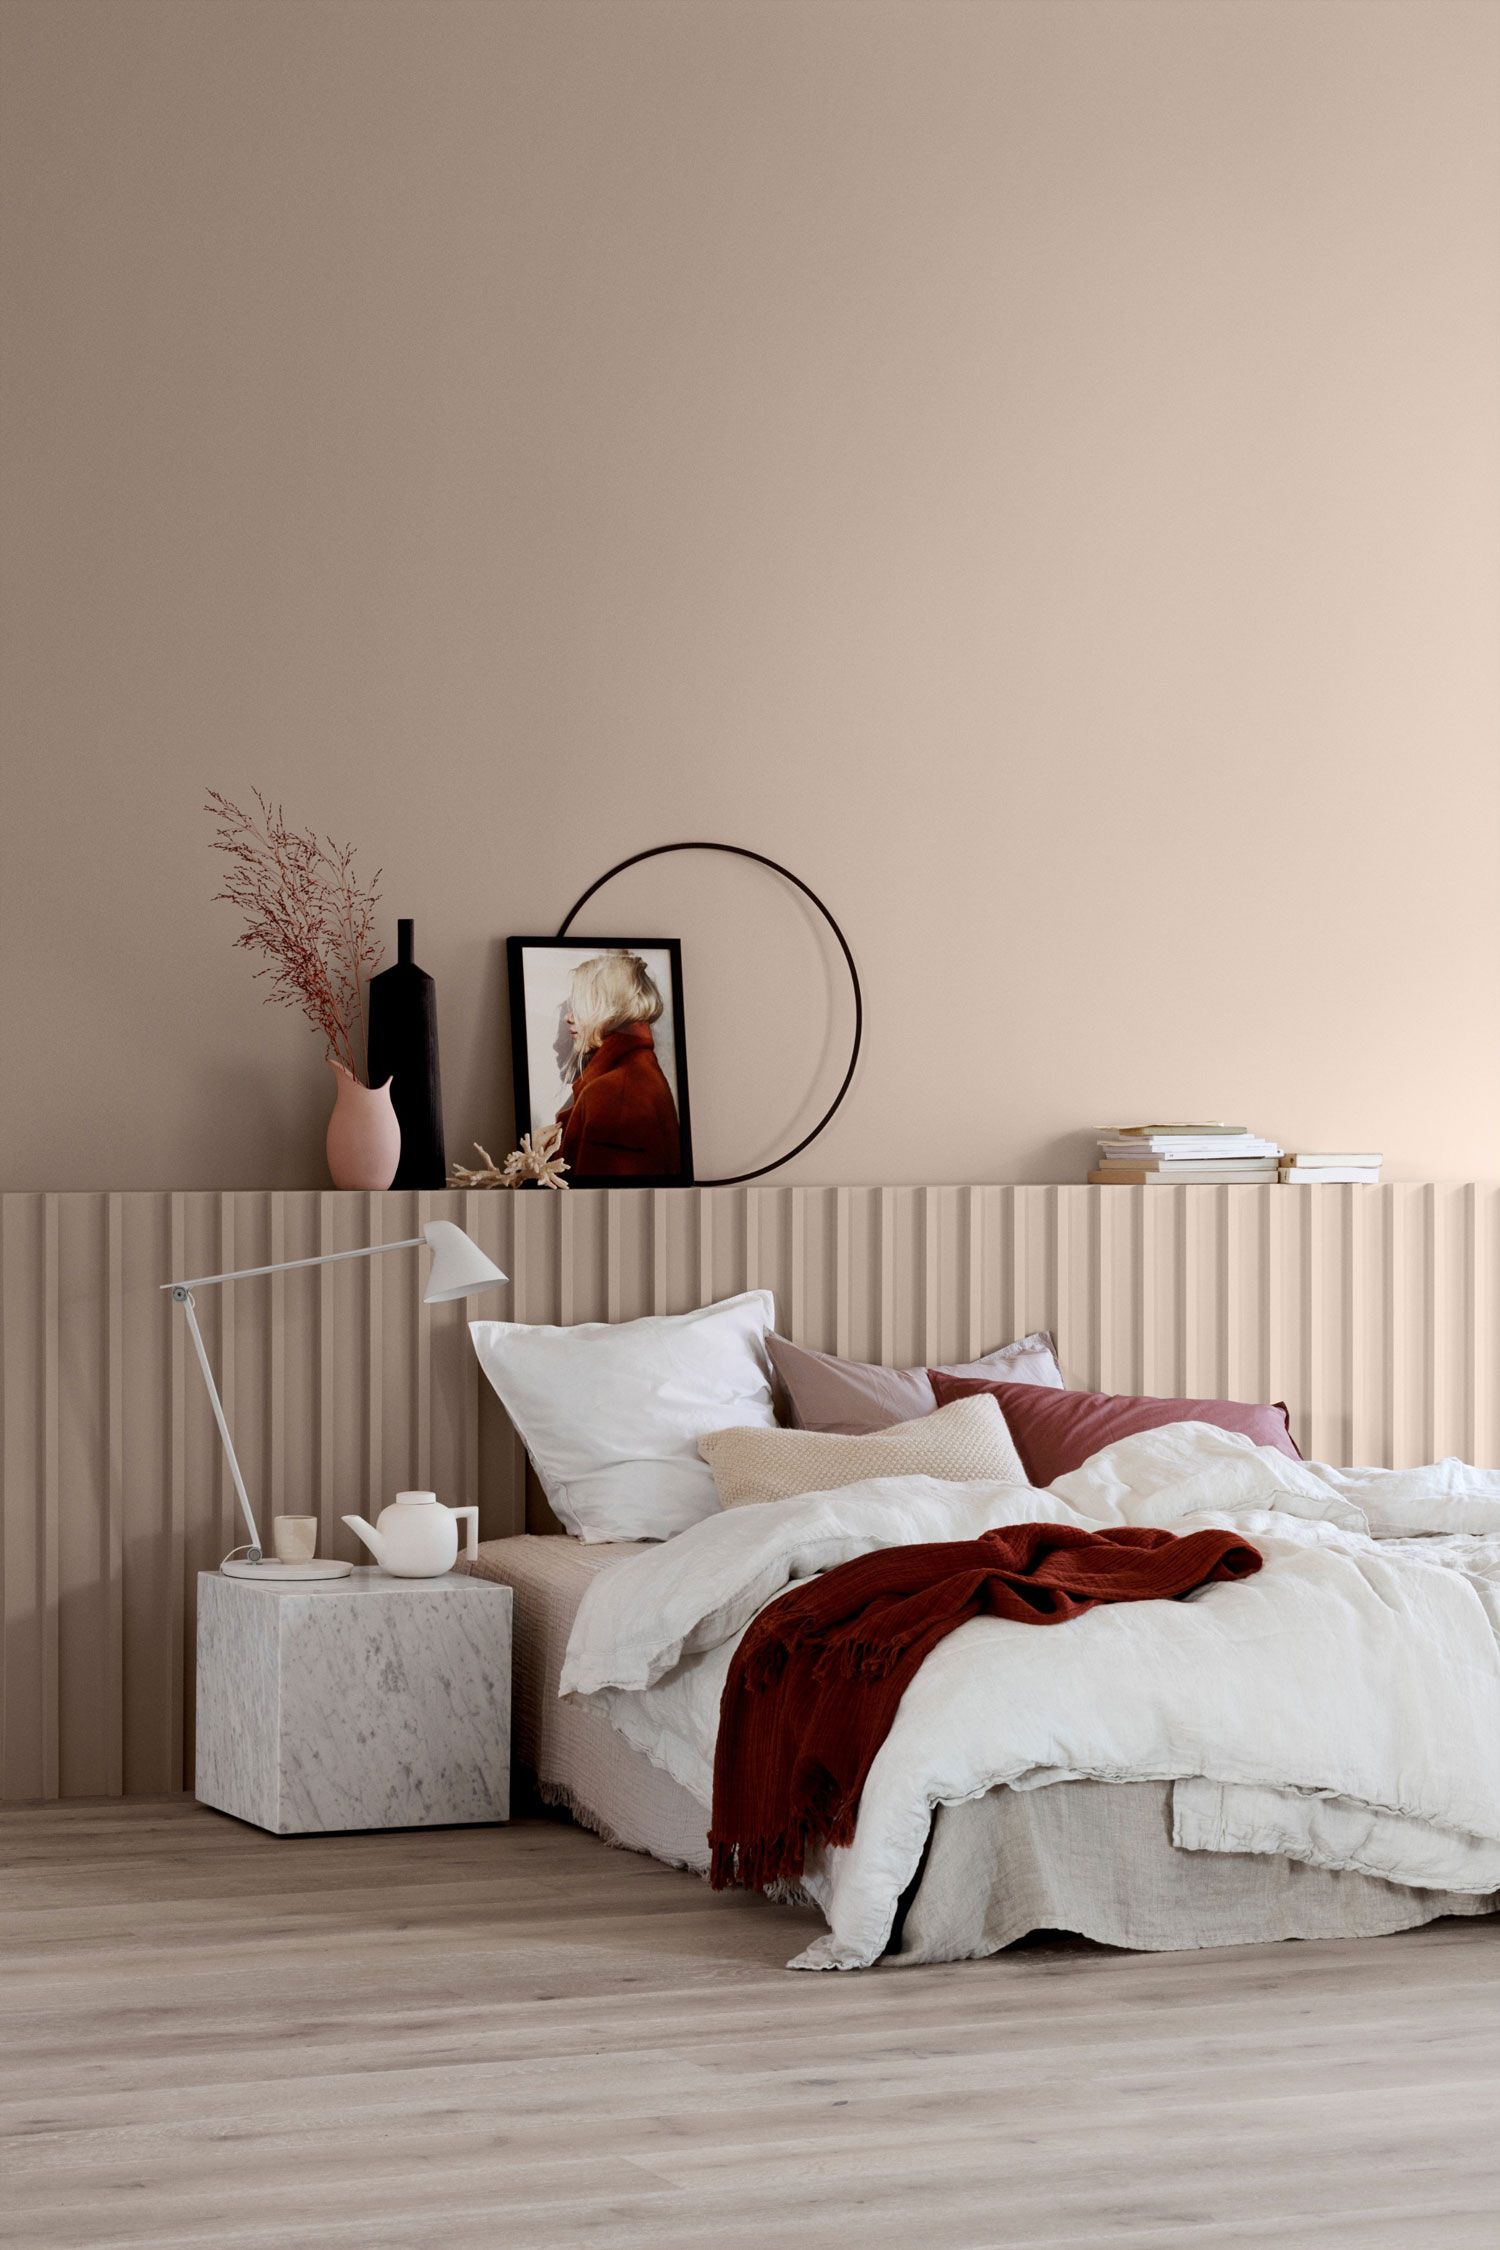 Bedroom Interior Trends 2018 Rhythm Of Life Jotun Identifies Interior Colour Trends